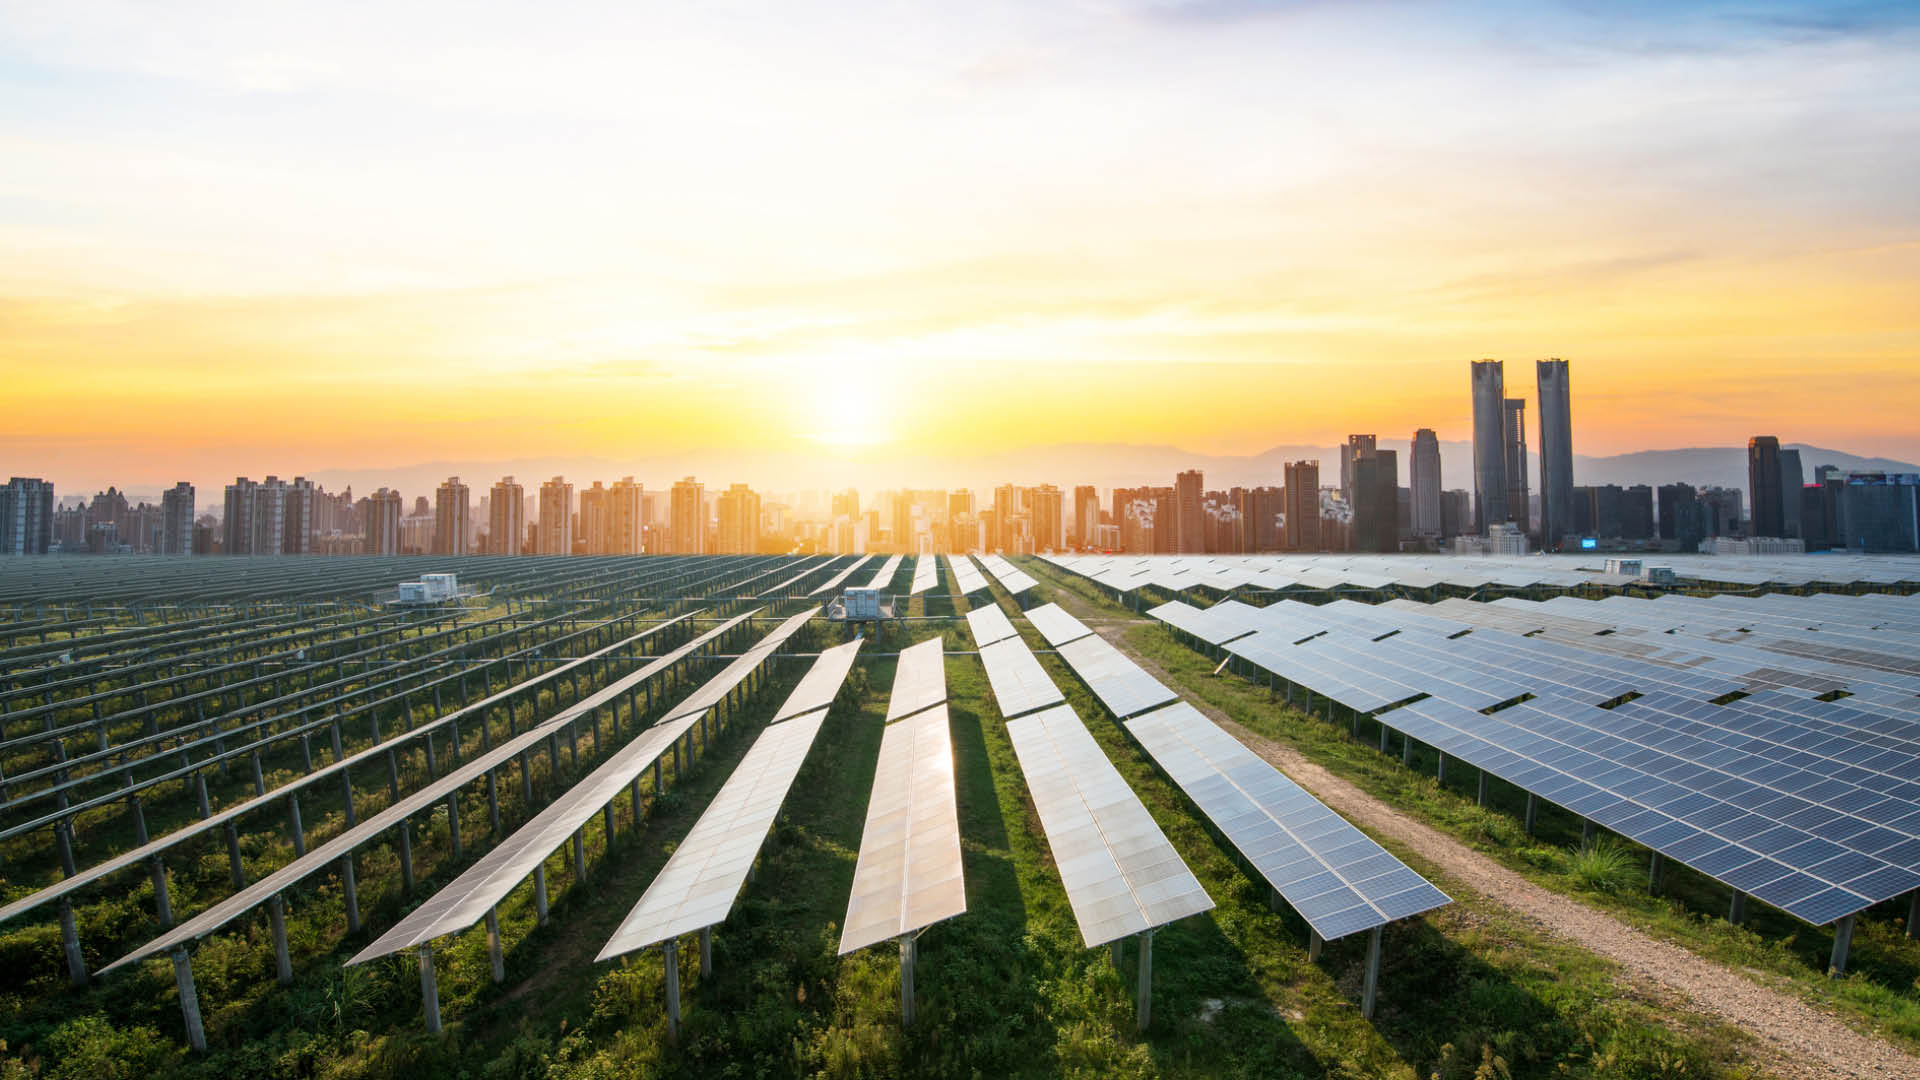 Energy Academy & Projects Academy: What's on the horizon in 2021